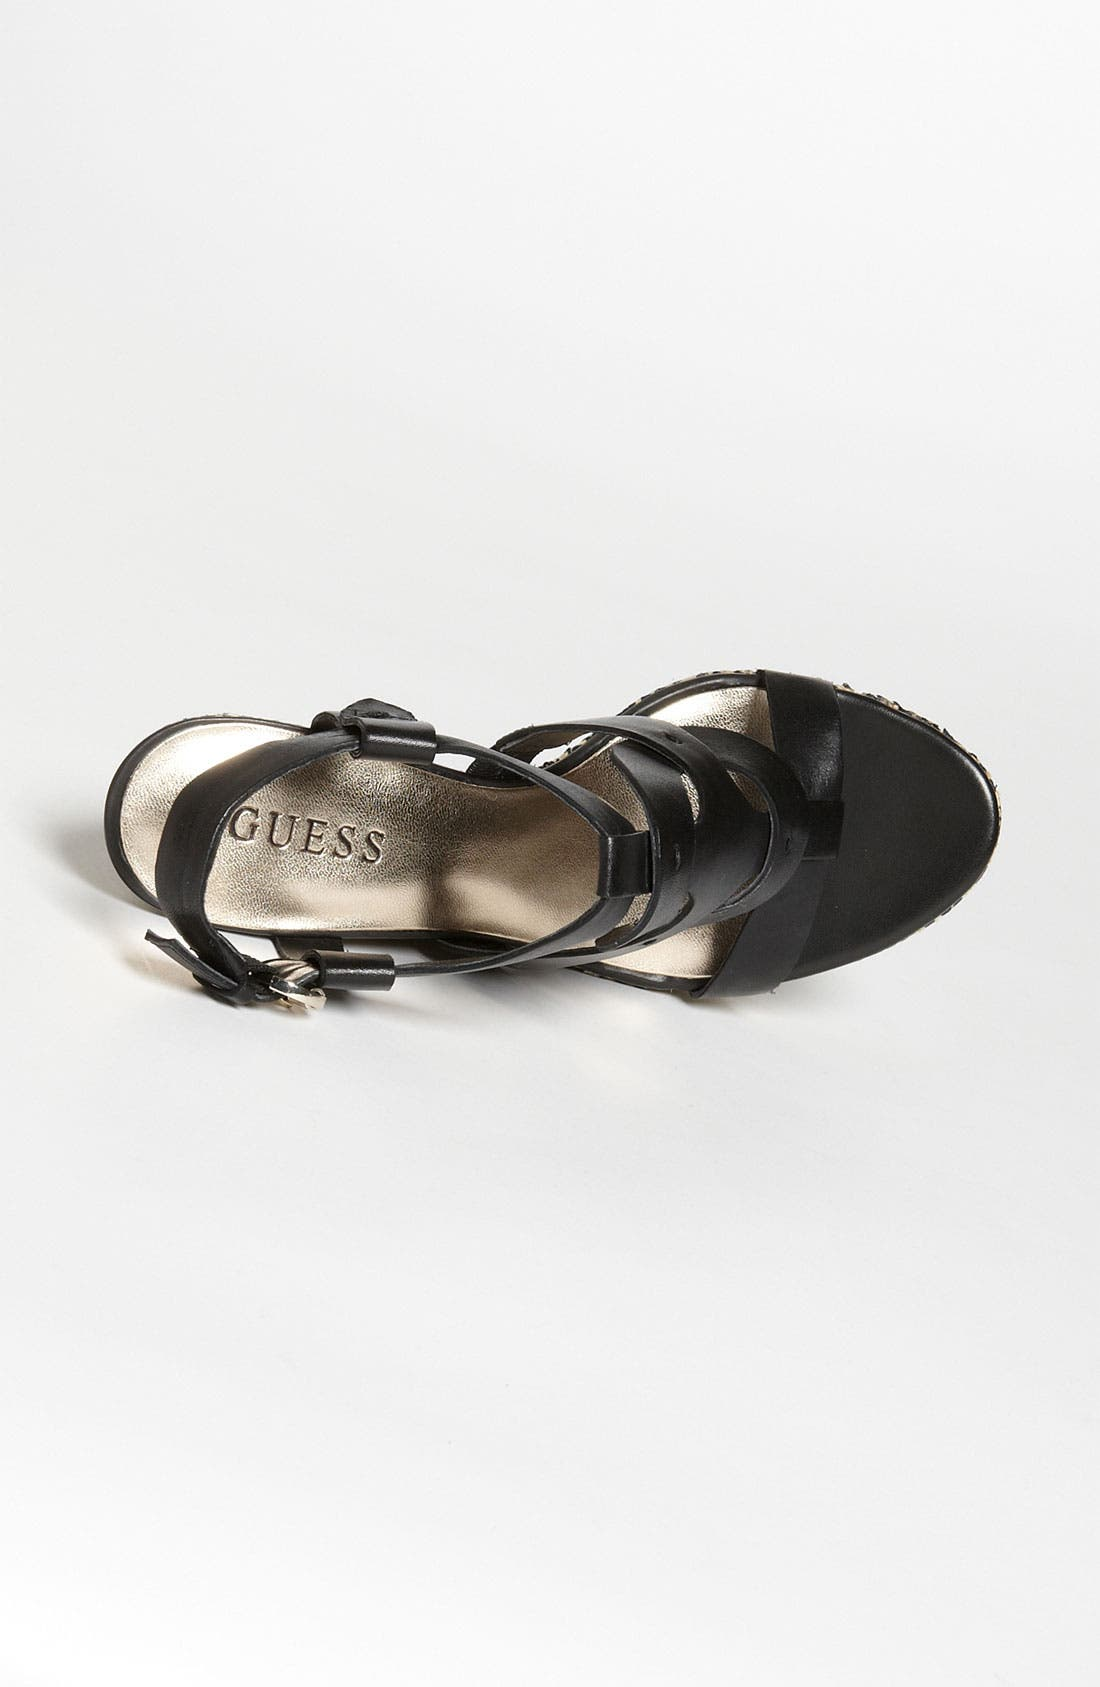 GUESS,                             'Dailona' Sandal,                             Alternate thumbnail 3, color,                             001